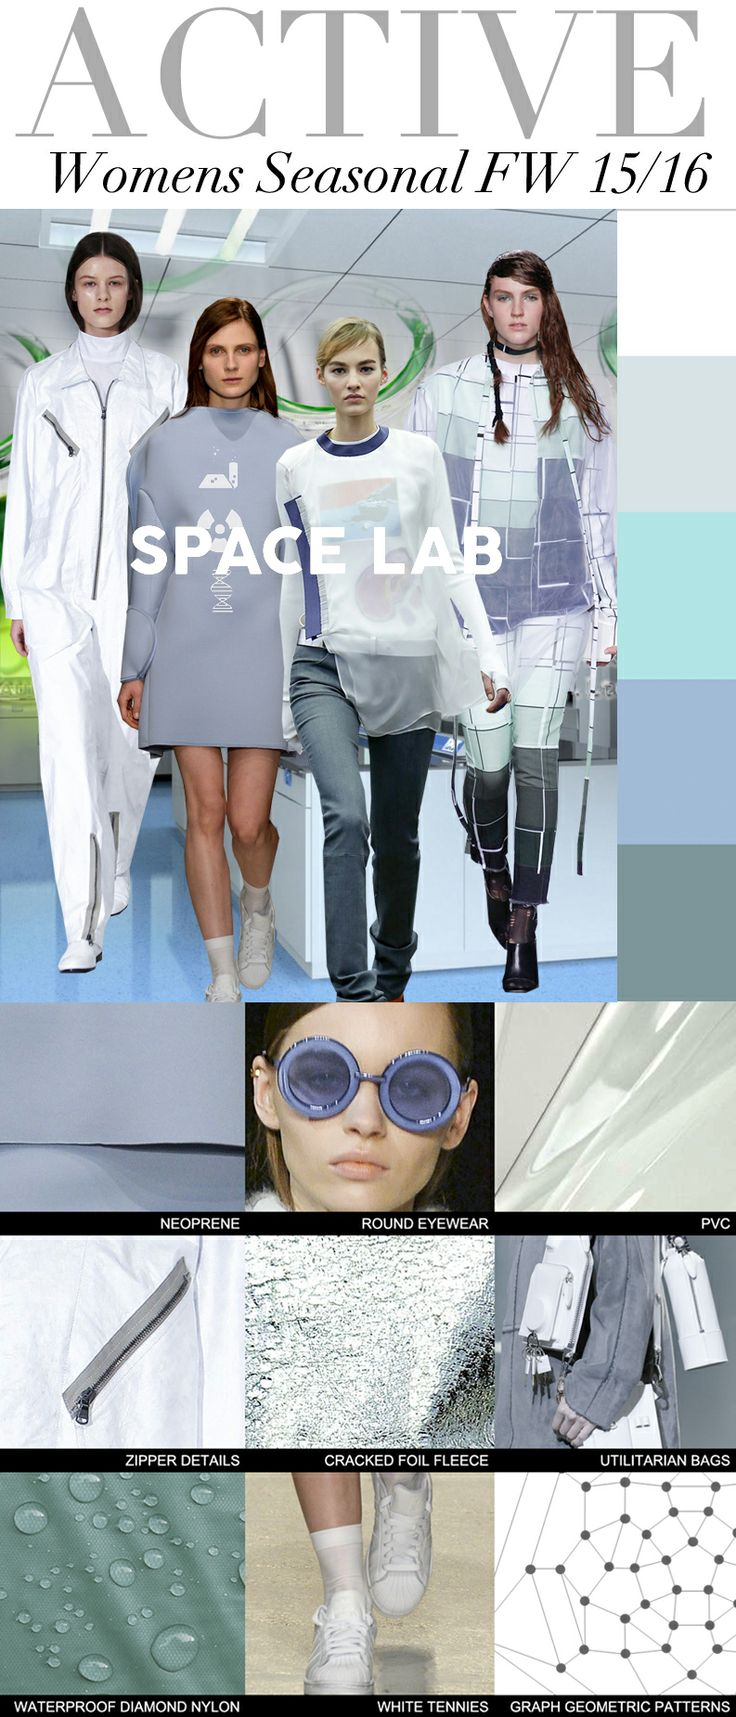 Trend Council: Active Womens Seasonal FW 15/16 - Space Lab